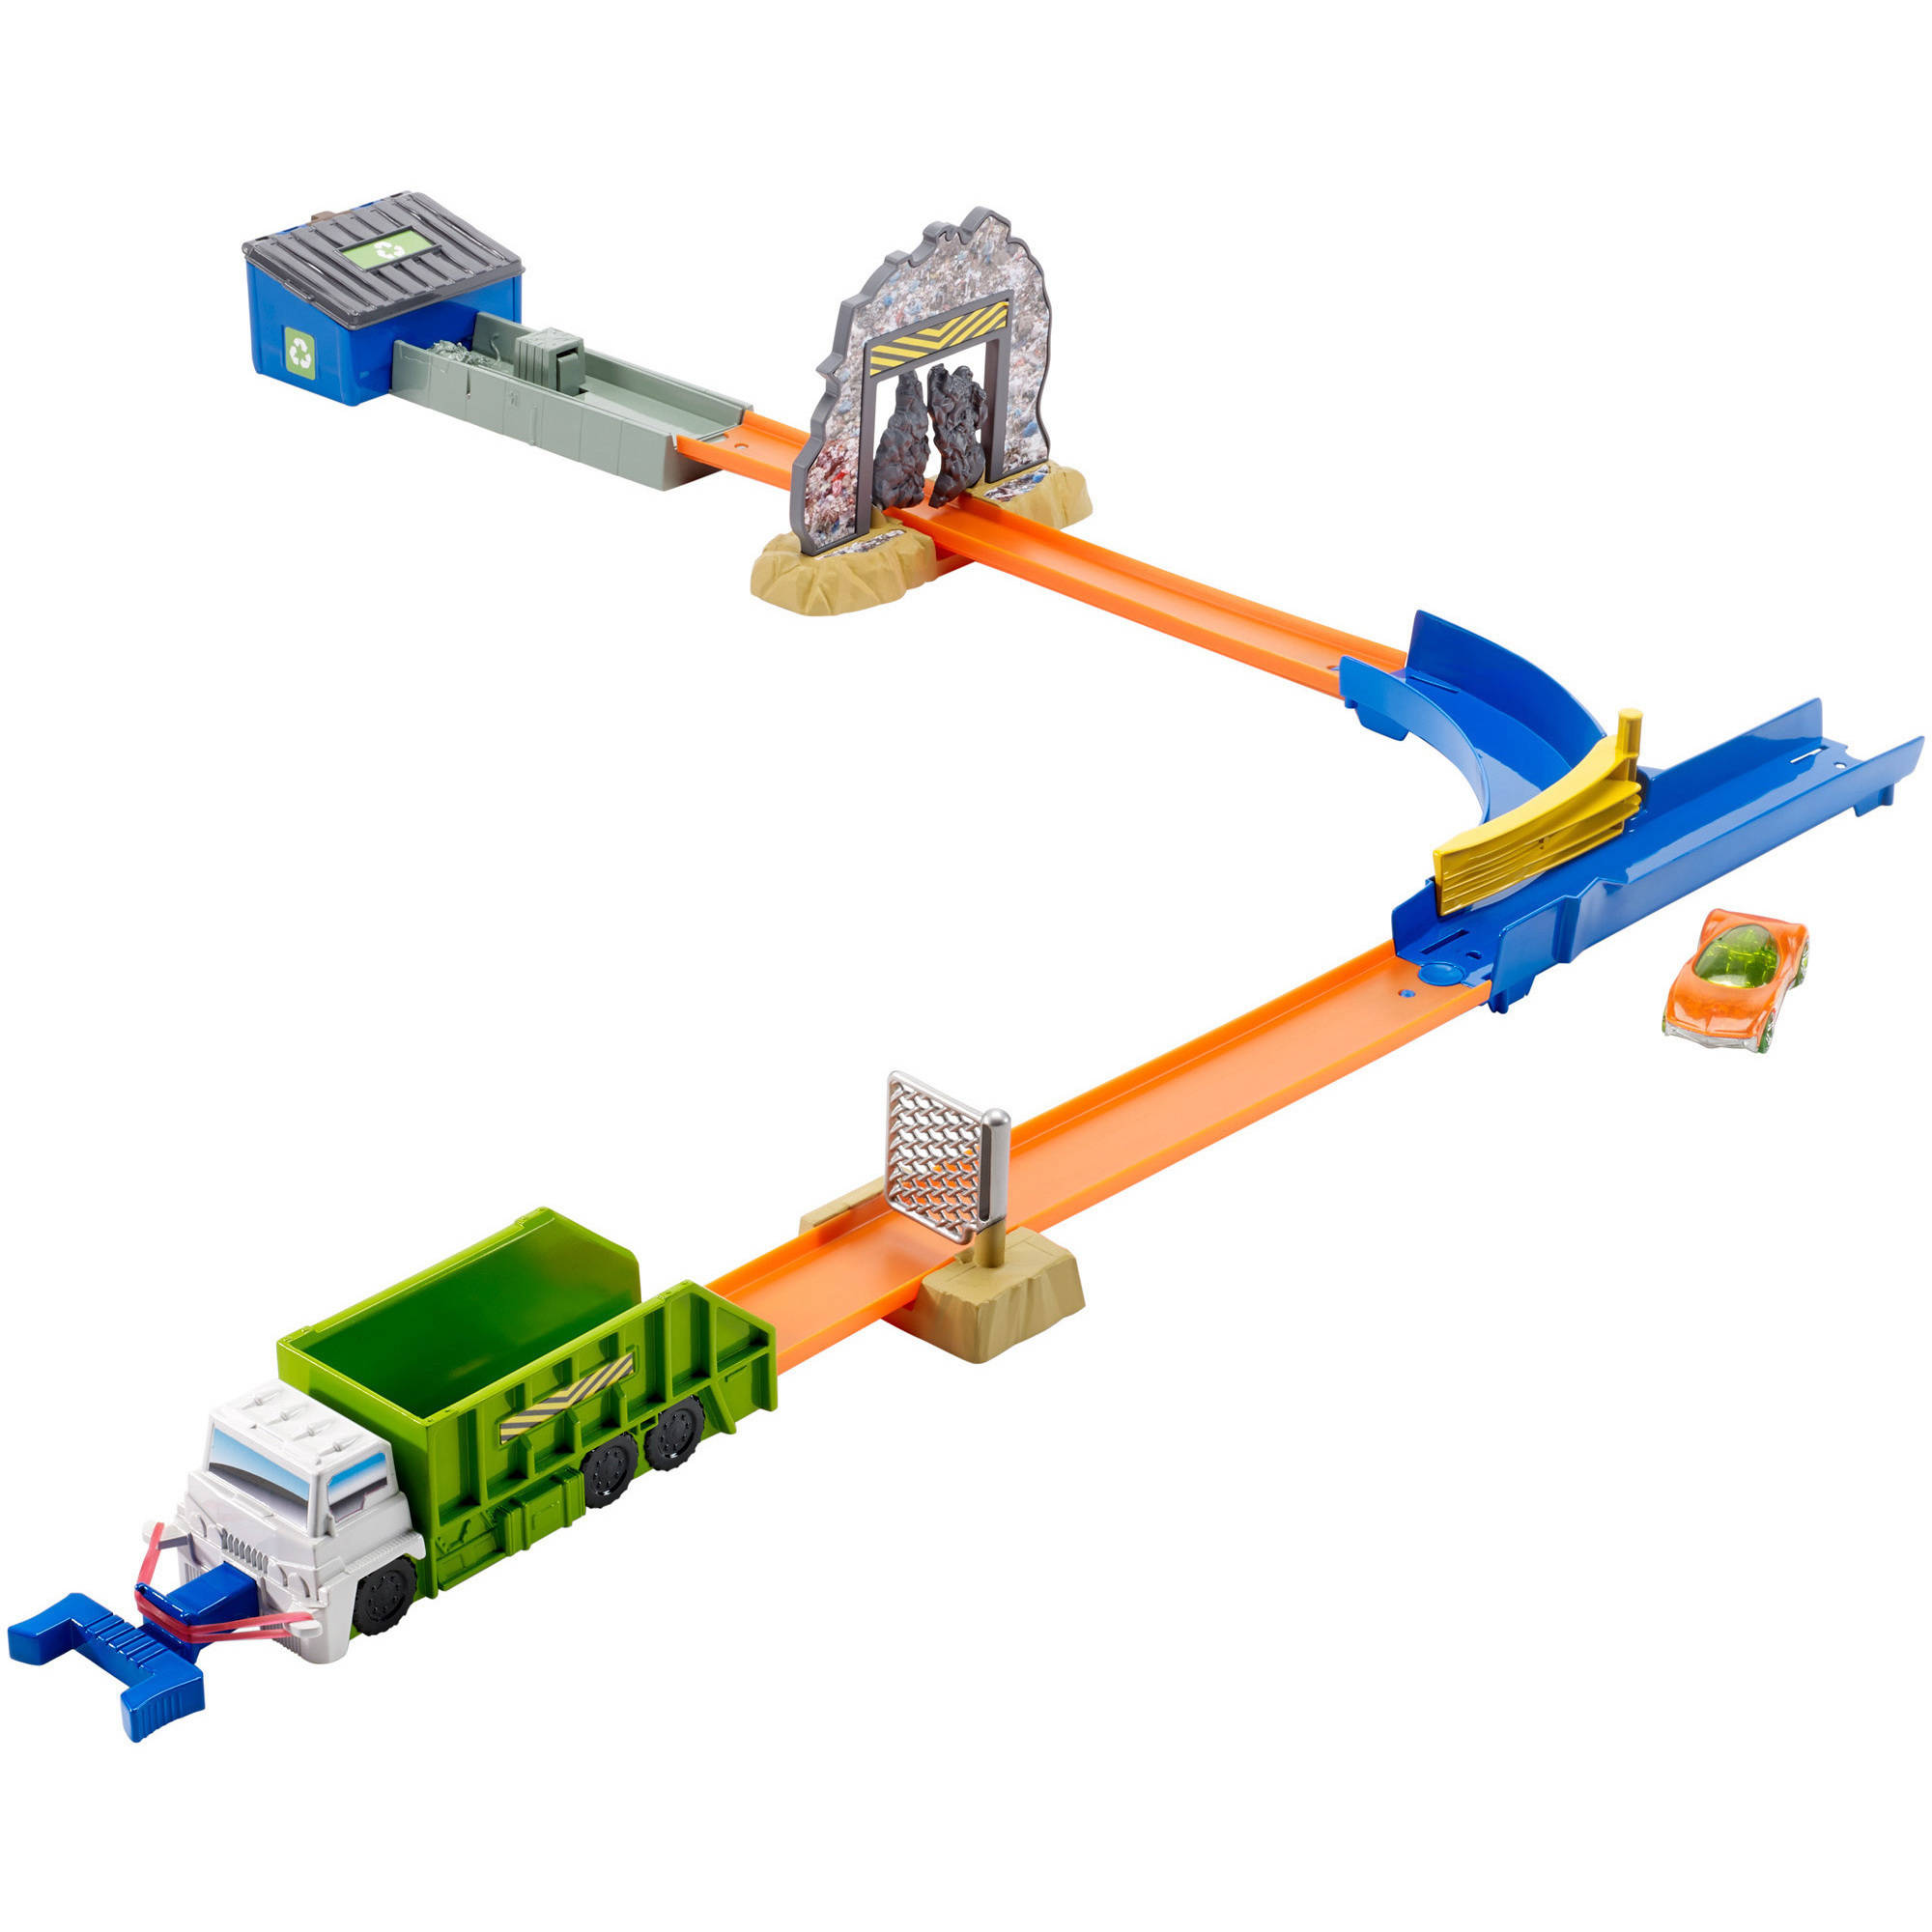 Hot Wheels Trash Basher Trackset